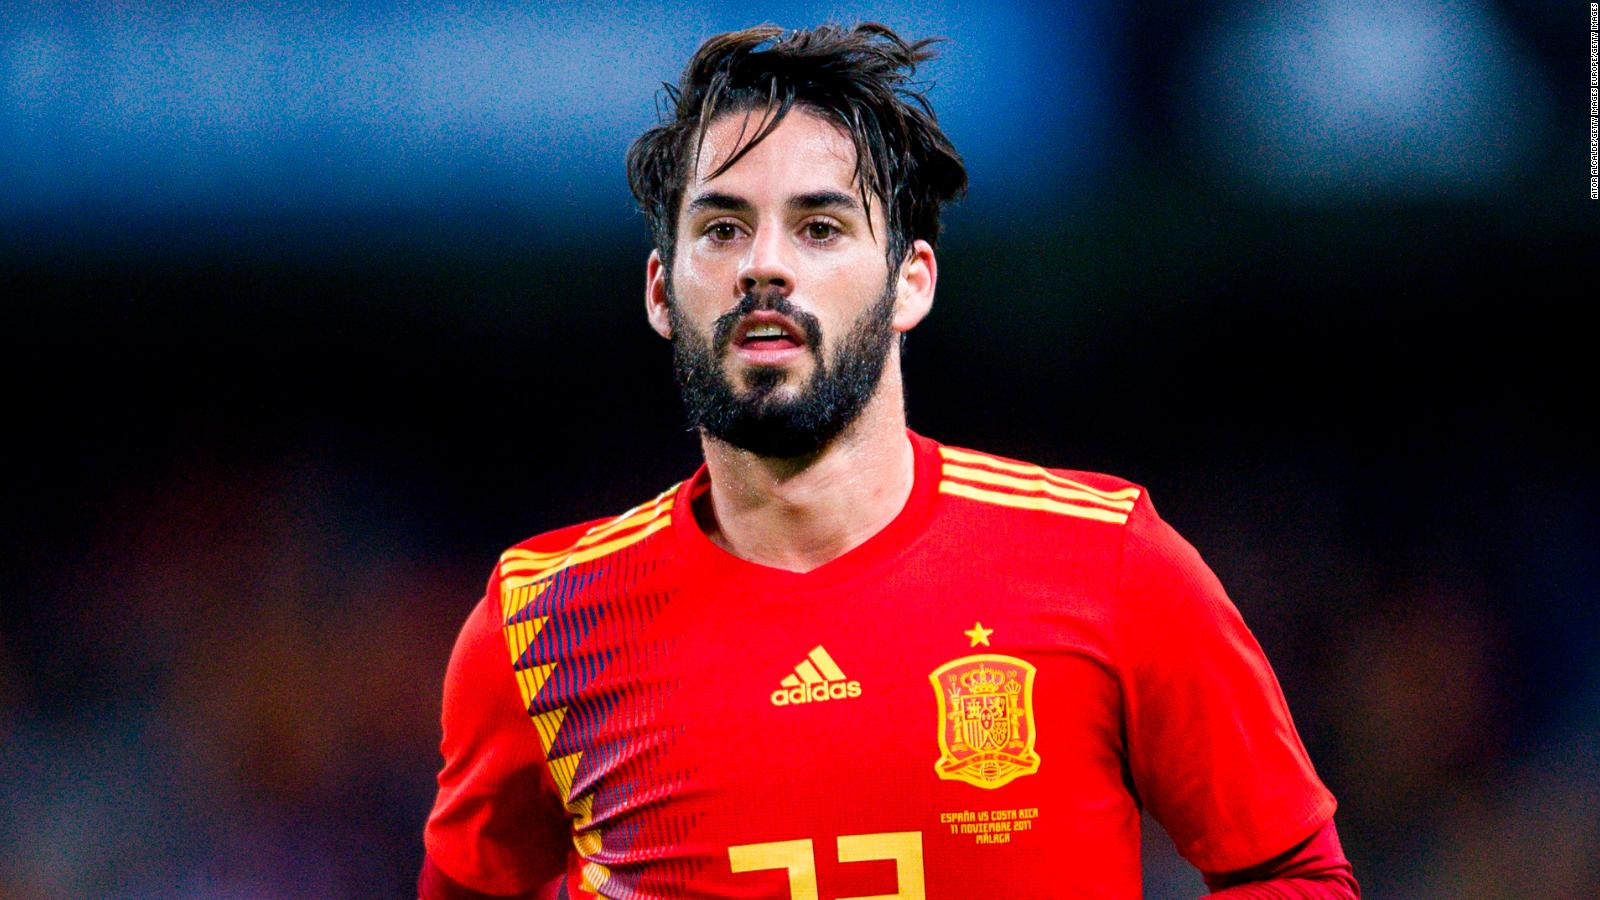 d3cb3504c COPA90: Why Spain will win the 2018 World Cup - CNN Video